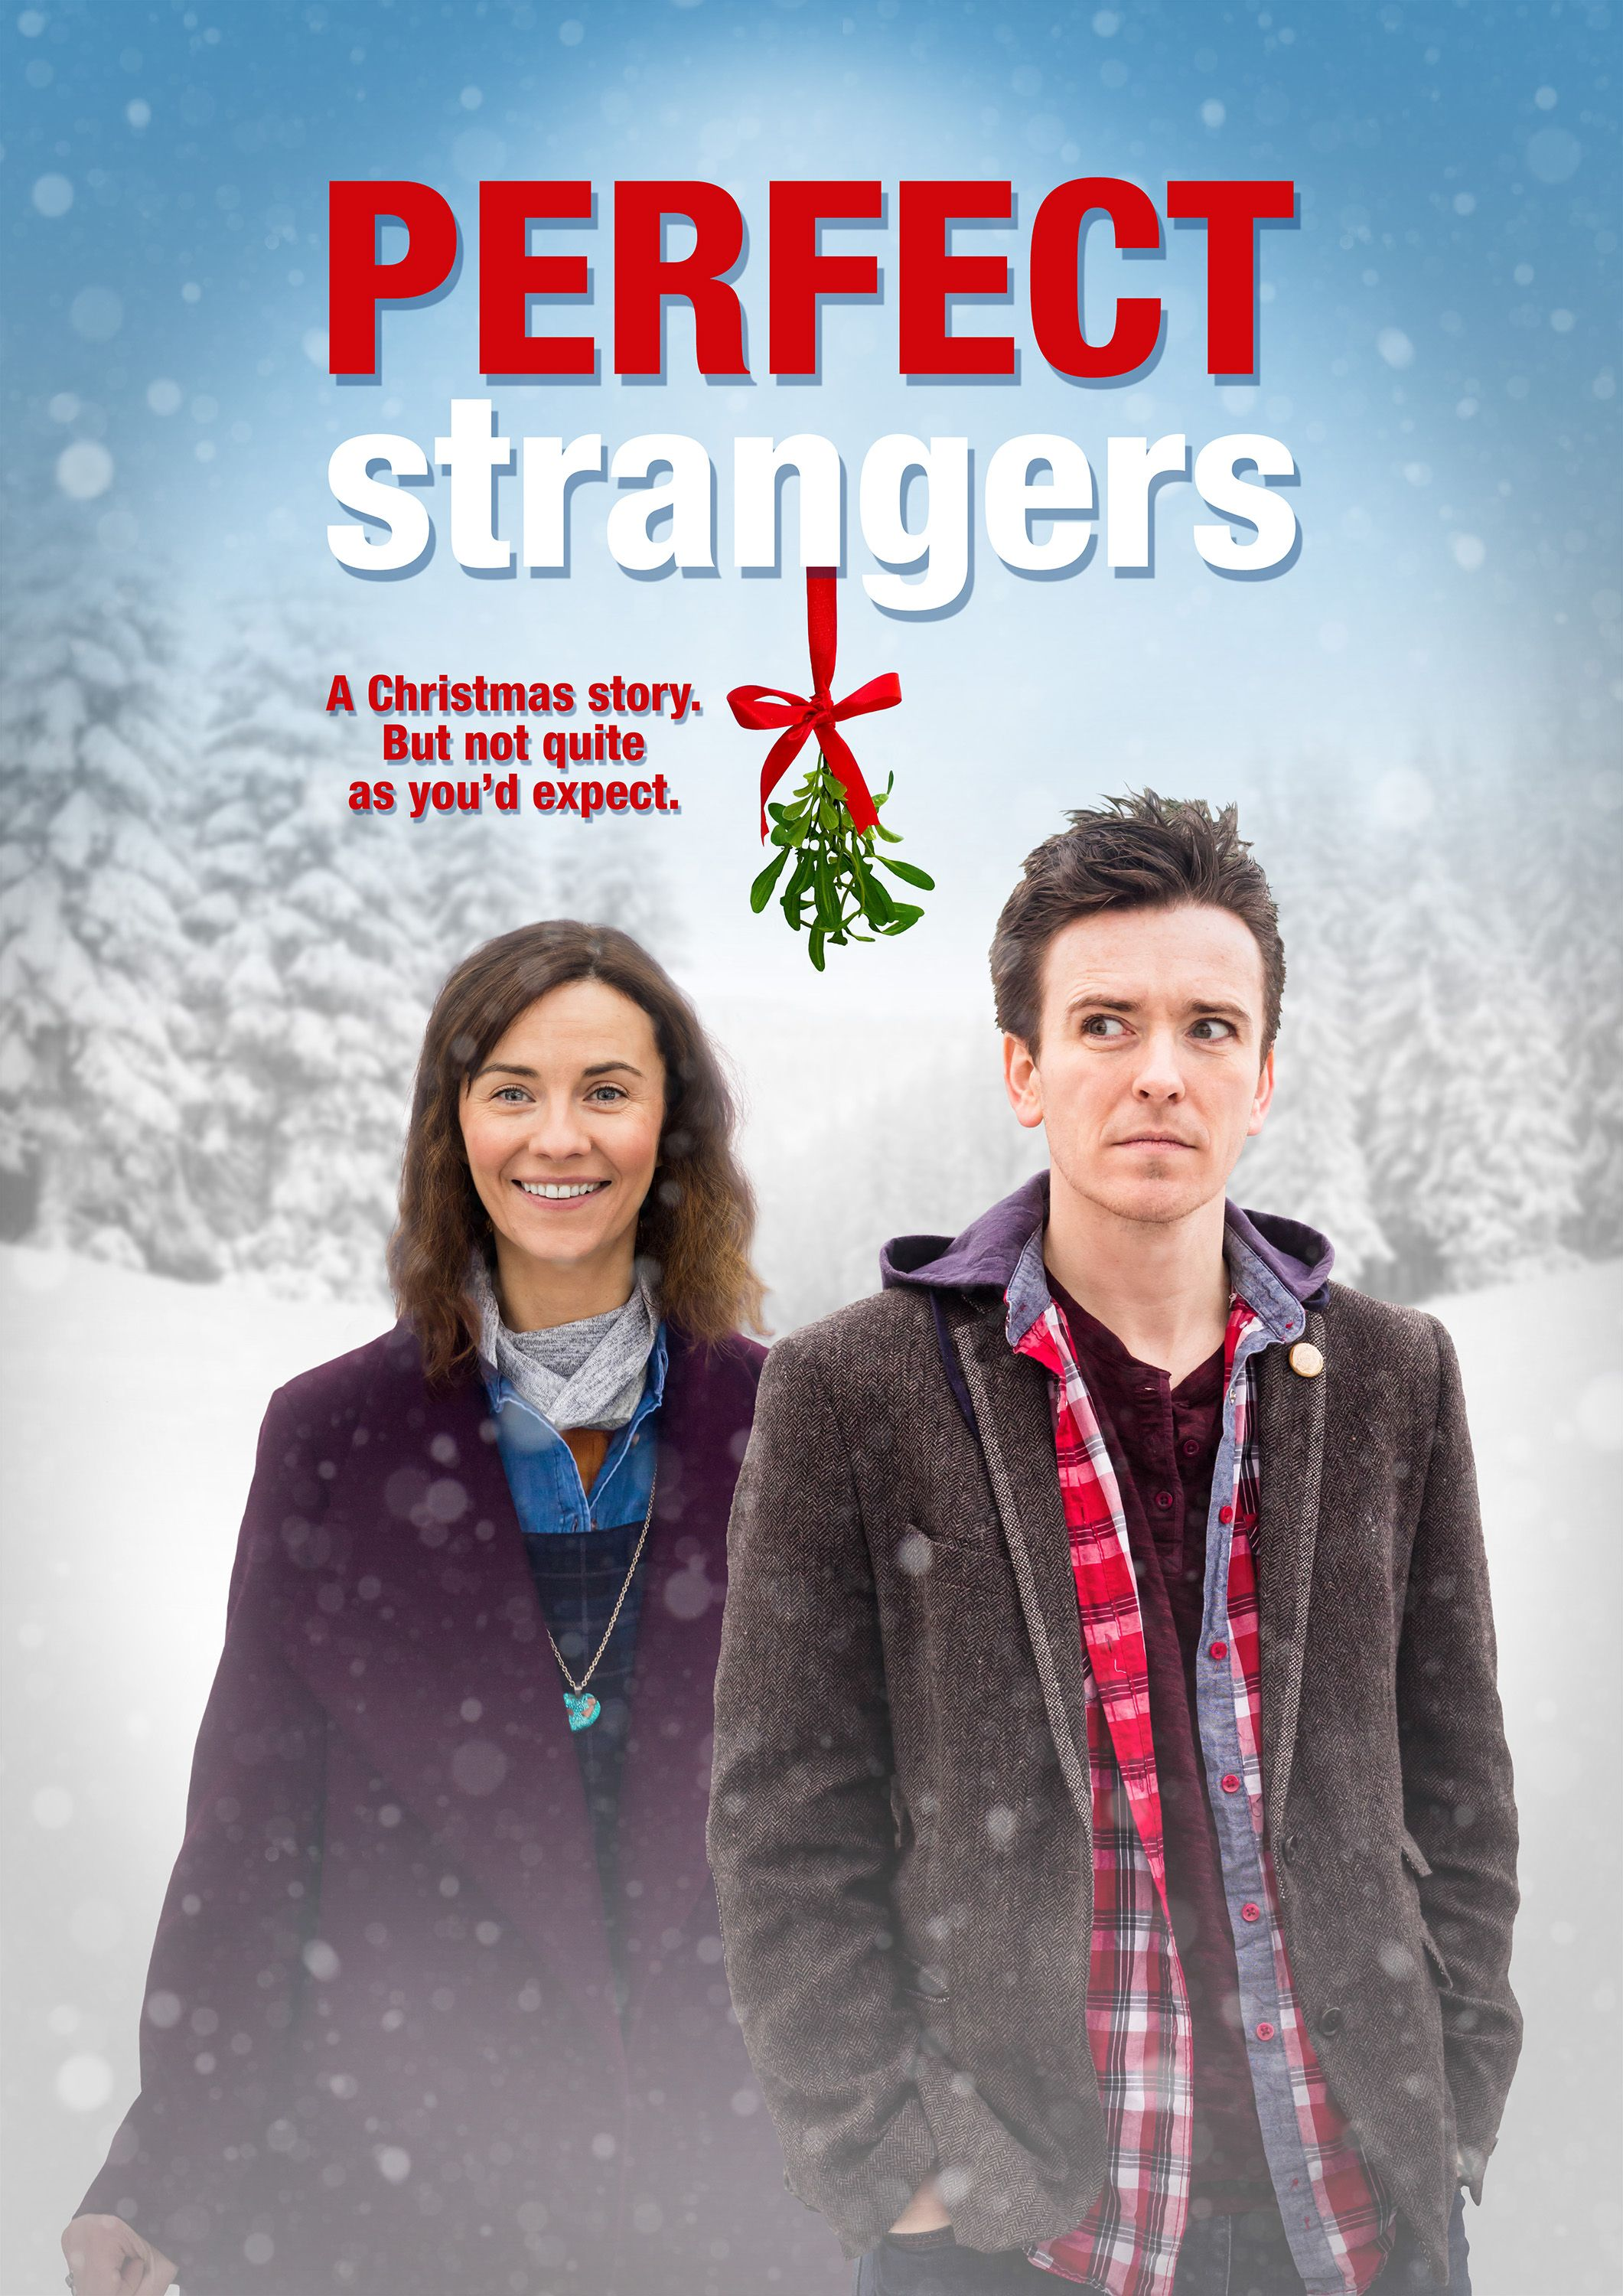 Great new Christmas movie. Shooting starts in Scotland in